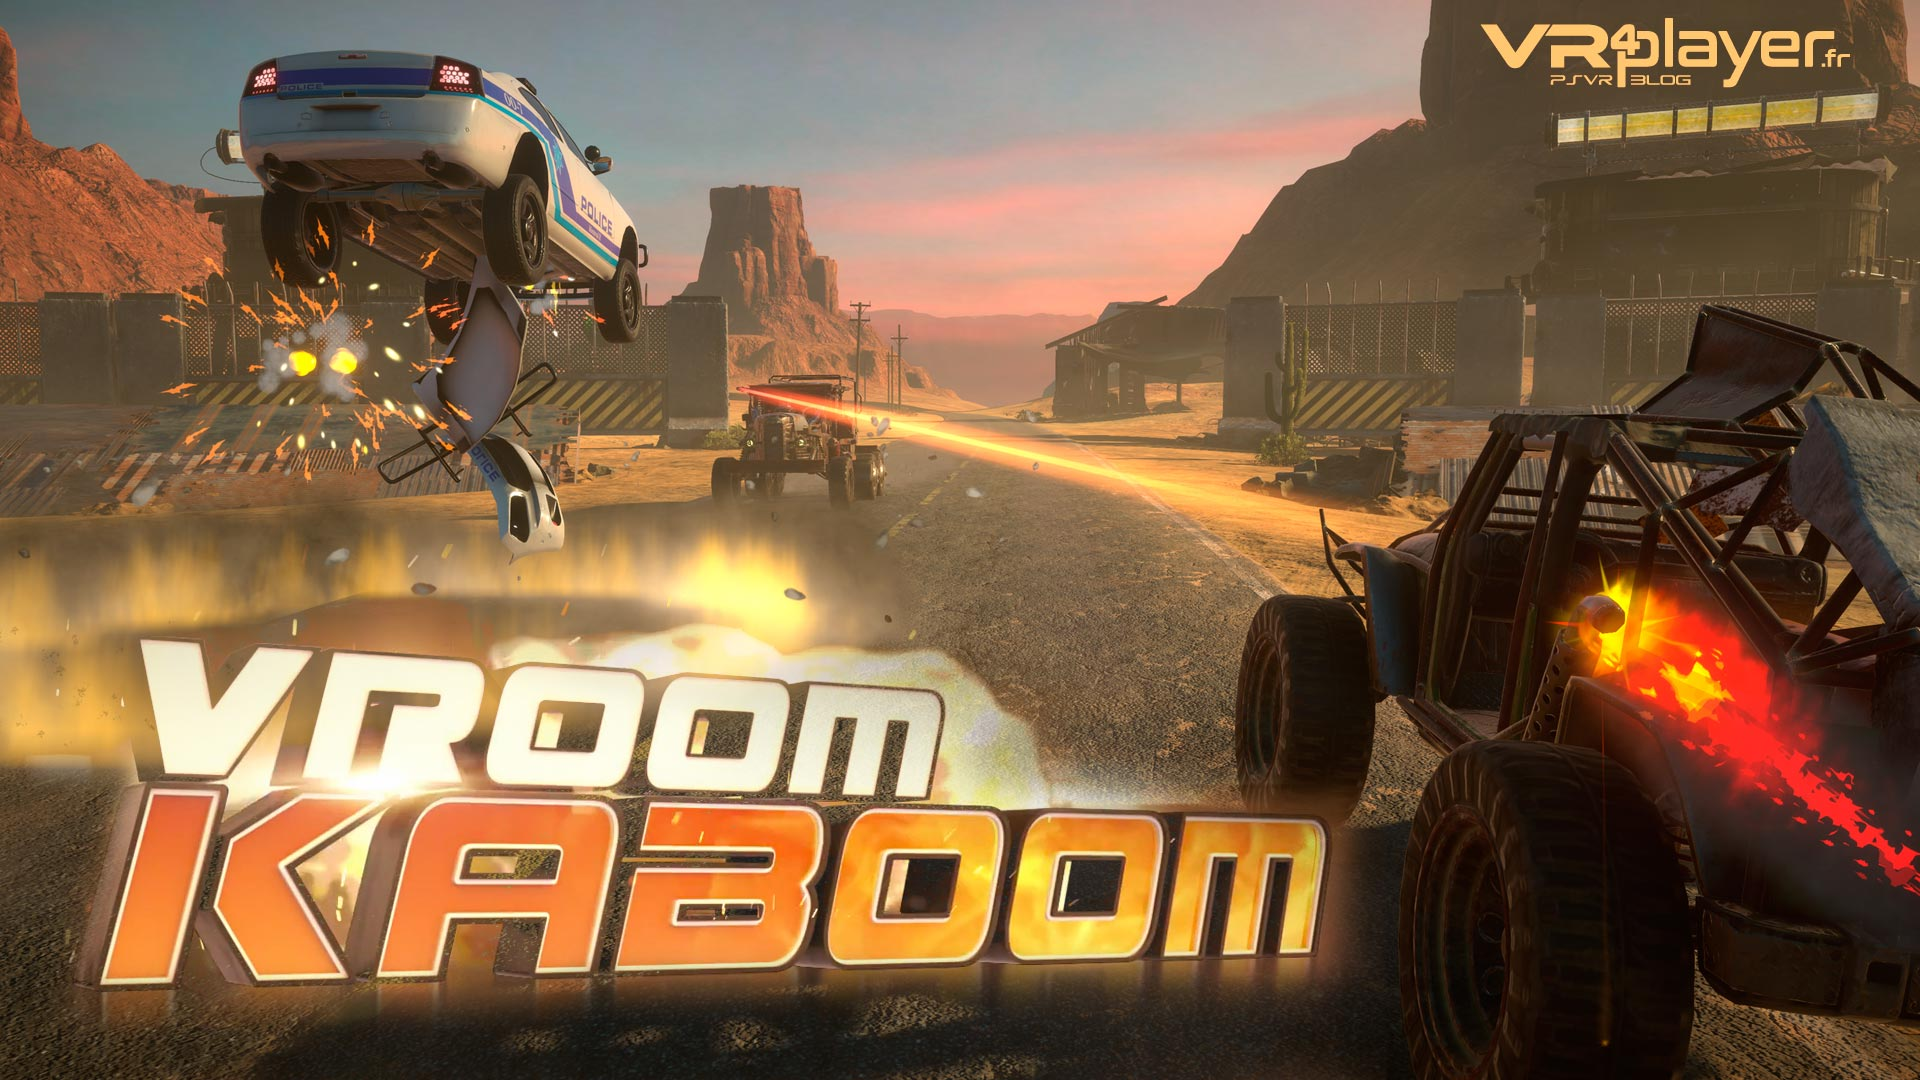 Vroom Kaboom PlayStation VR VR4player